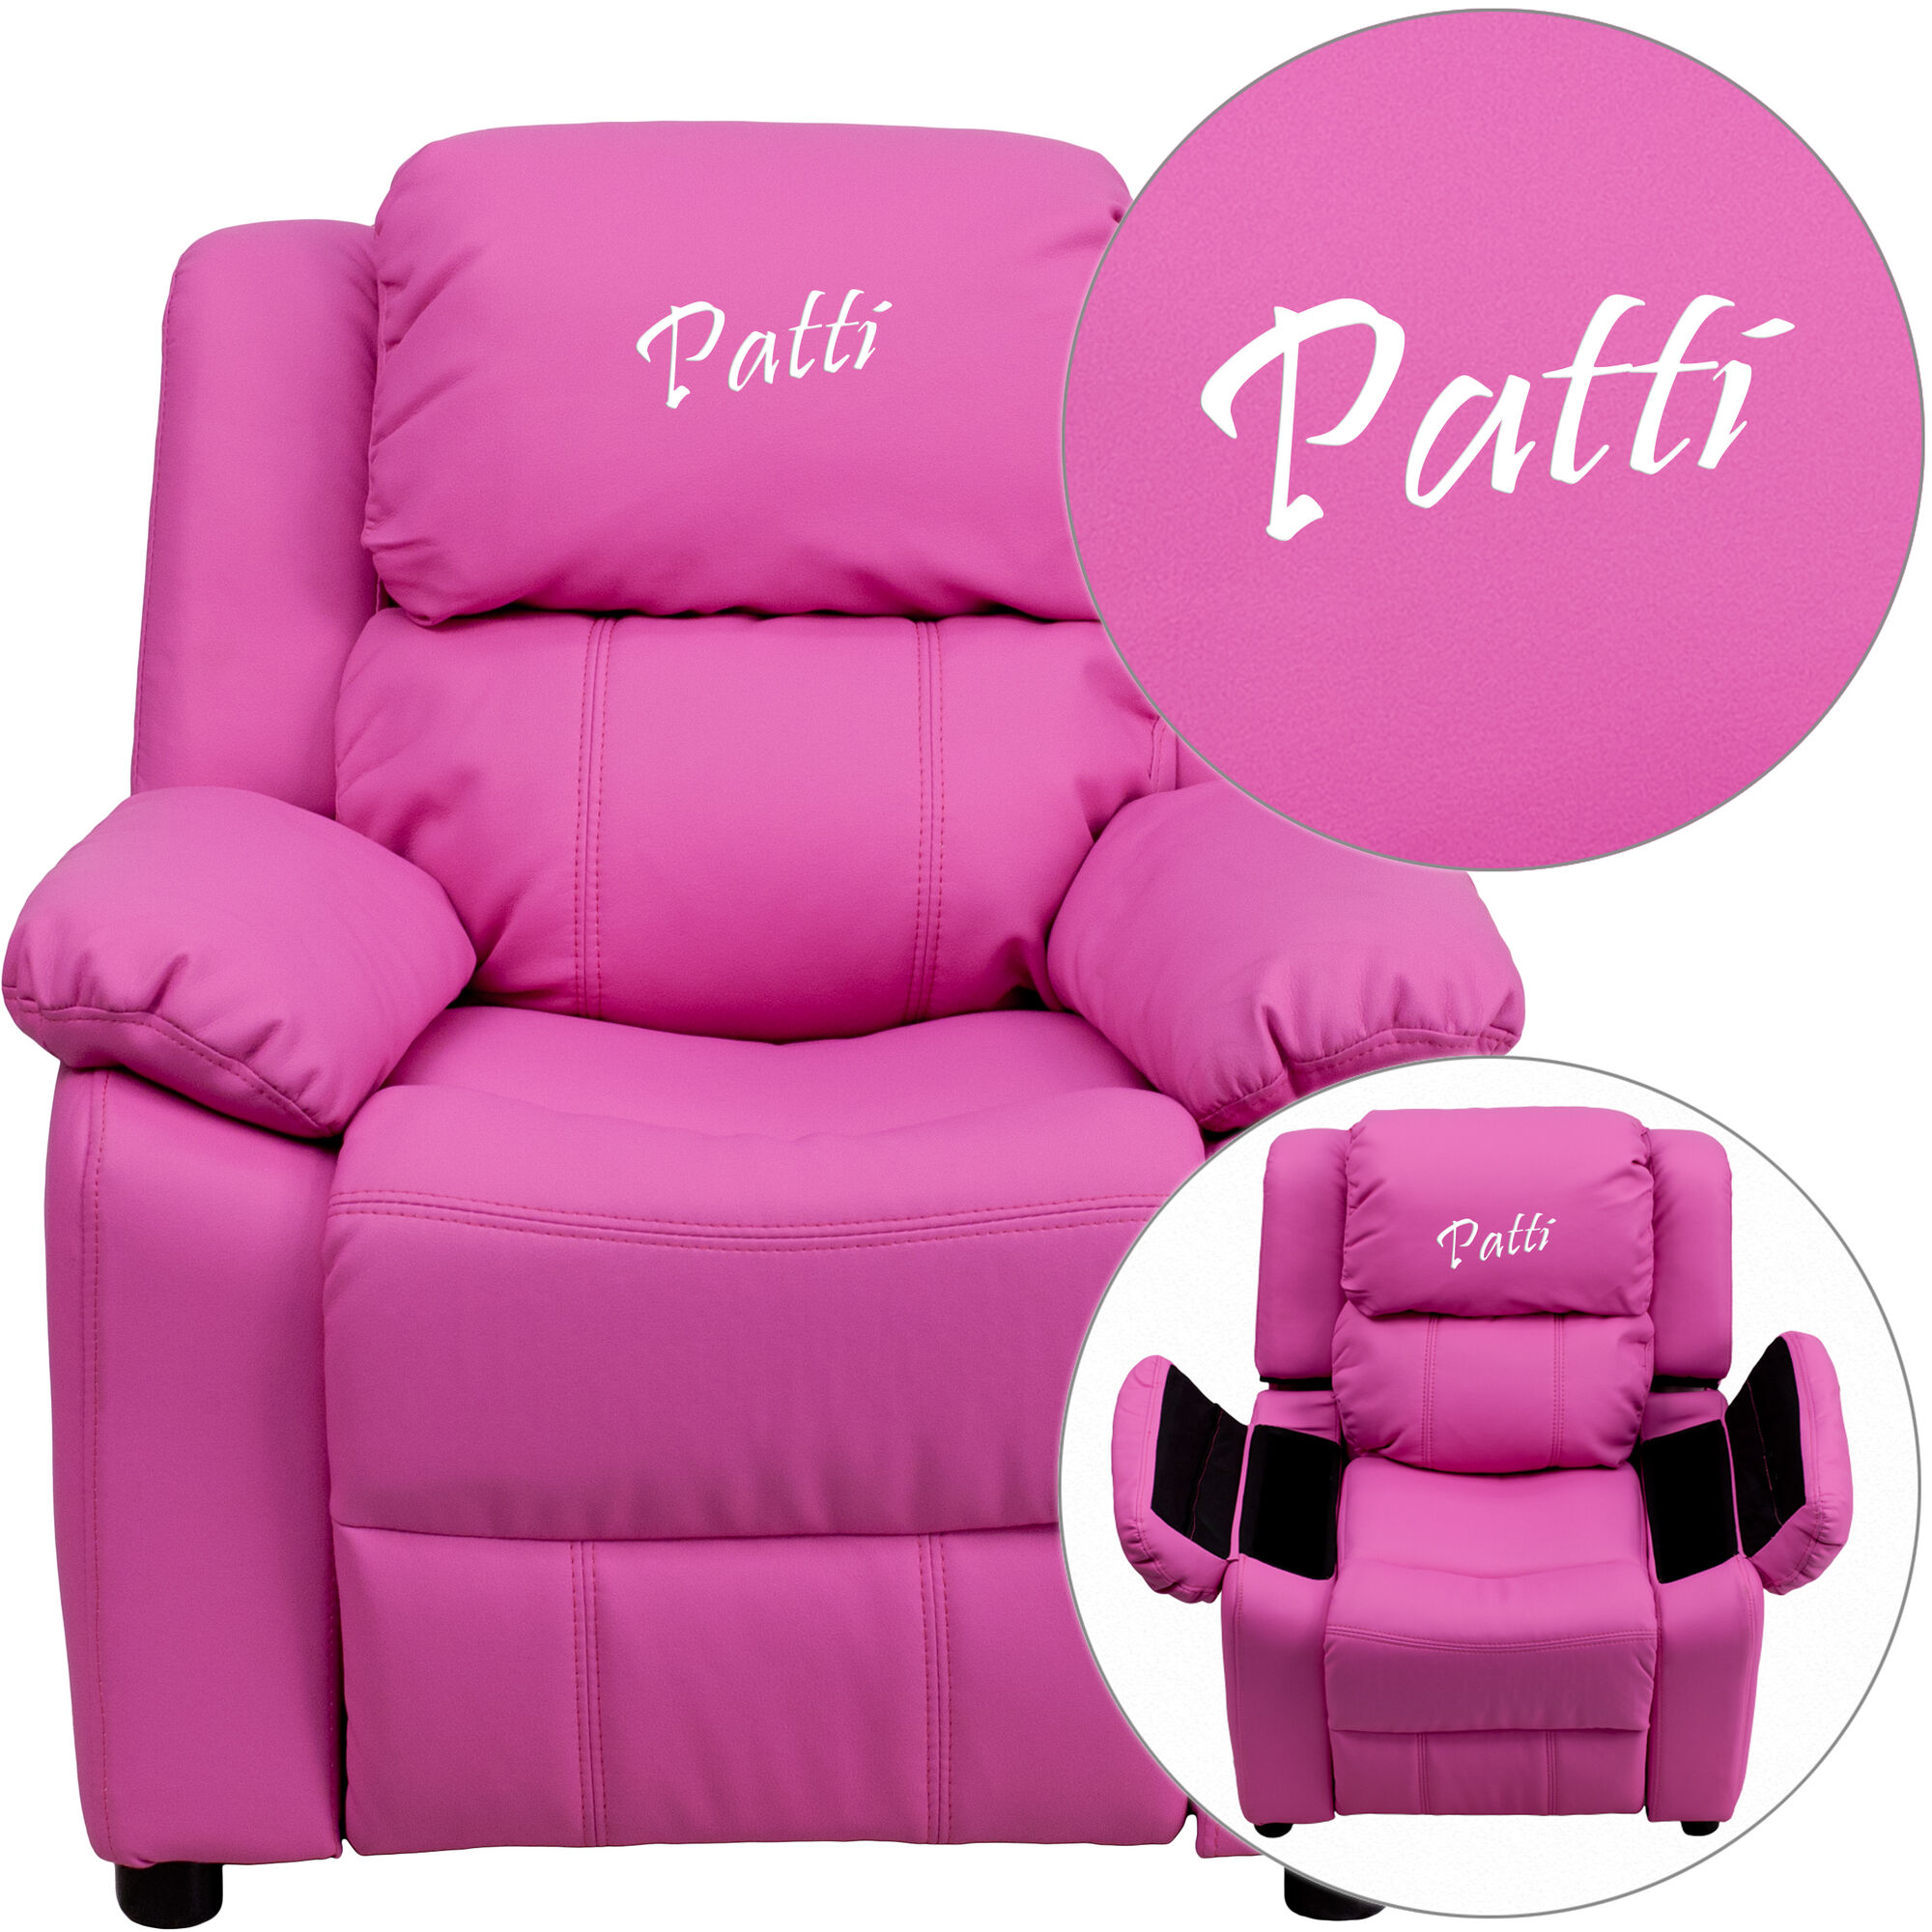 Groovy Personalized Deluxe Padded Hot Pink Vinyl Kids Recliner With Storage Arms Creativecarmelina Interior Chair Design Creativecarmelinacom